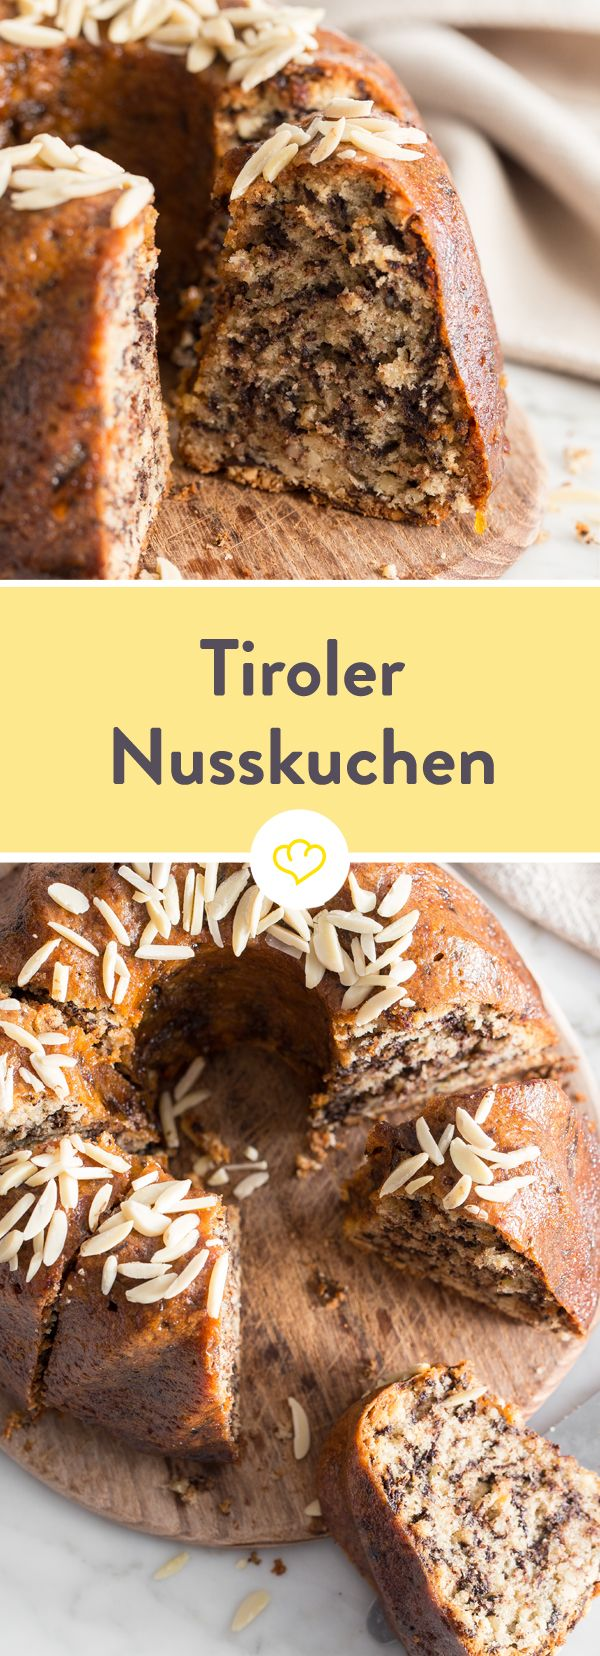 Kerniges Hütten-Schmankerl: Original Tiroler Nusskuchen #sweetrecipes